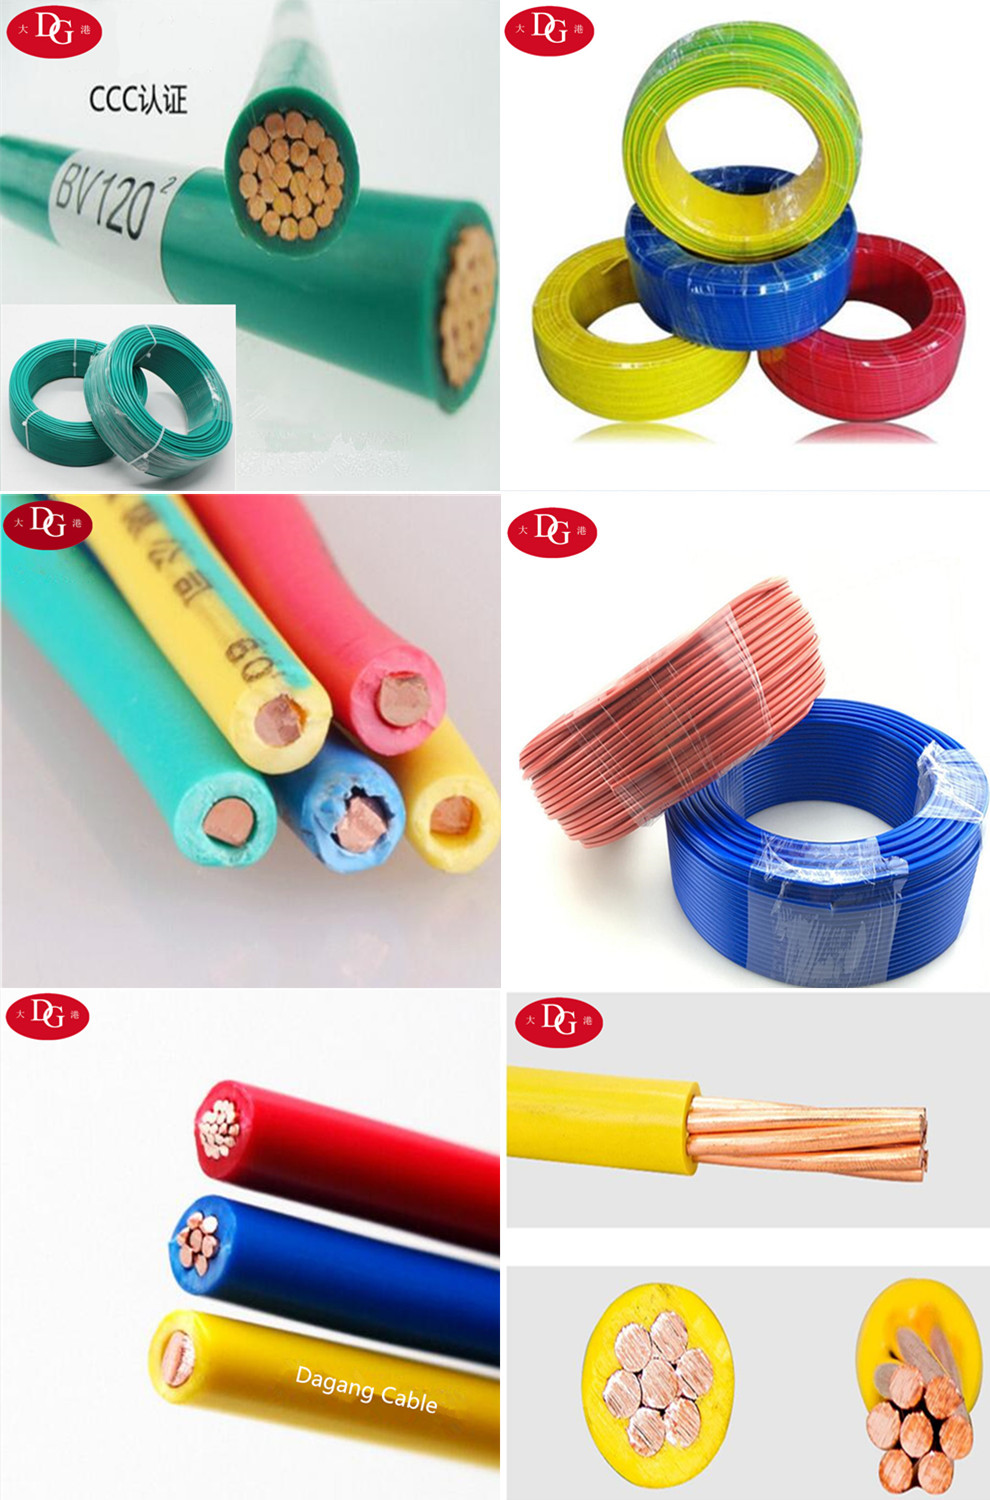 Pvc Insulated House Wiring Electrical Cable 100 Pure Copper Conductor